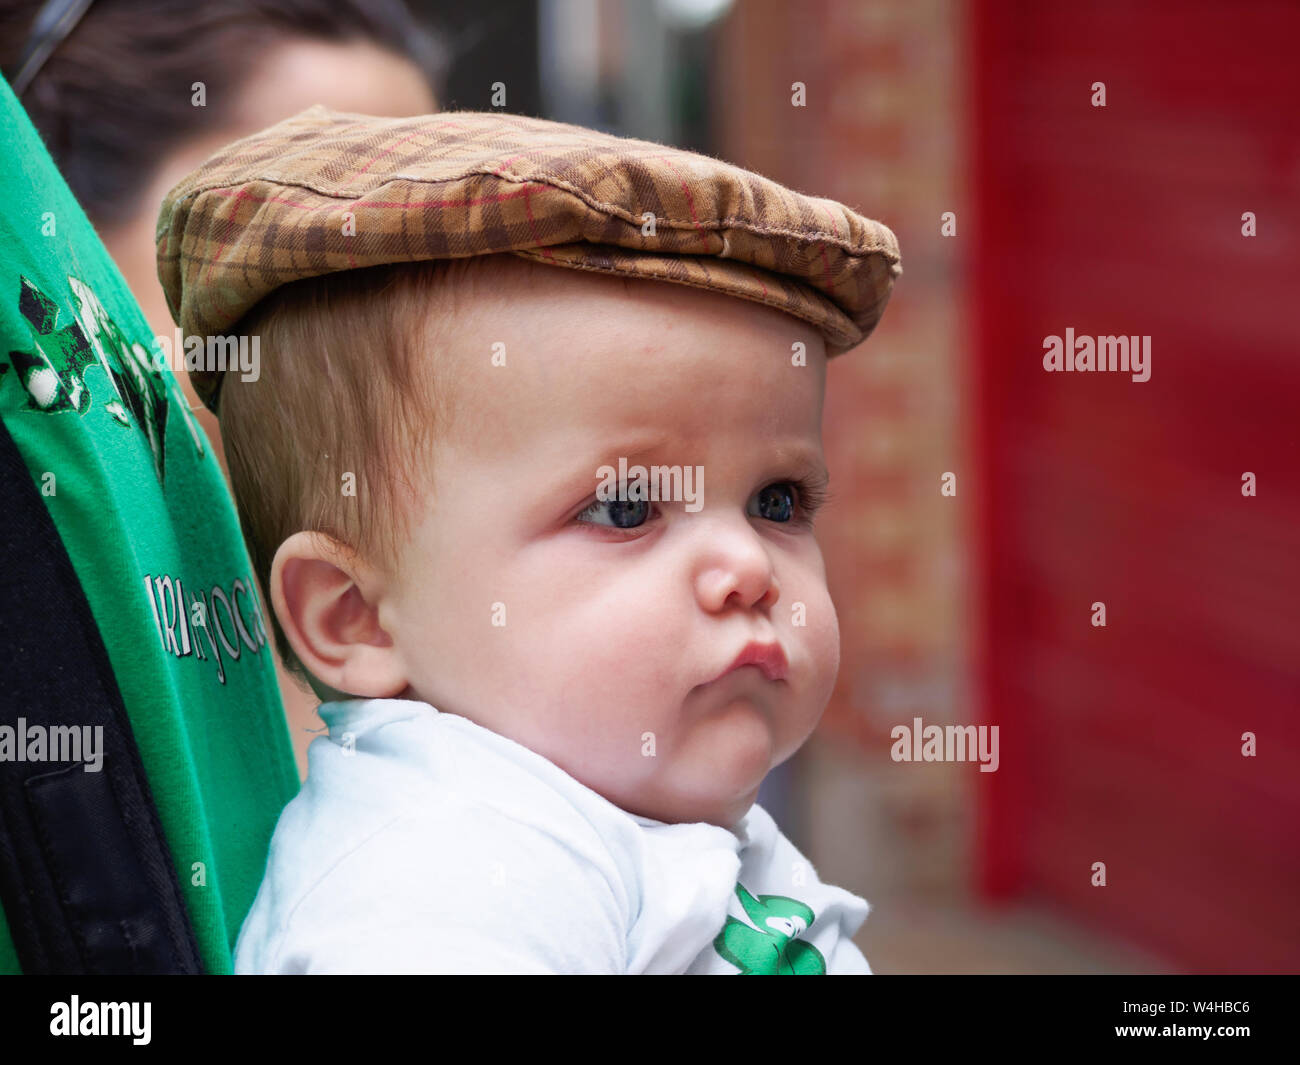 Chubby Cheeks High Resolution Stock Photography And Images Alamy